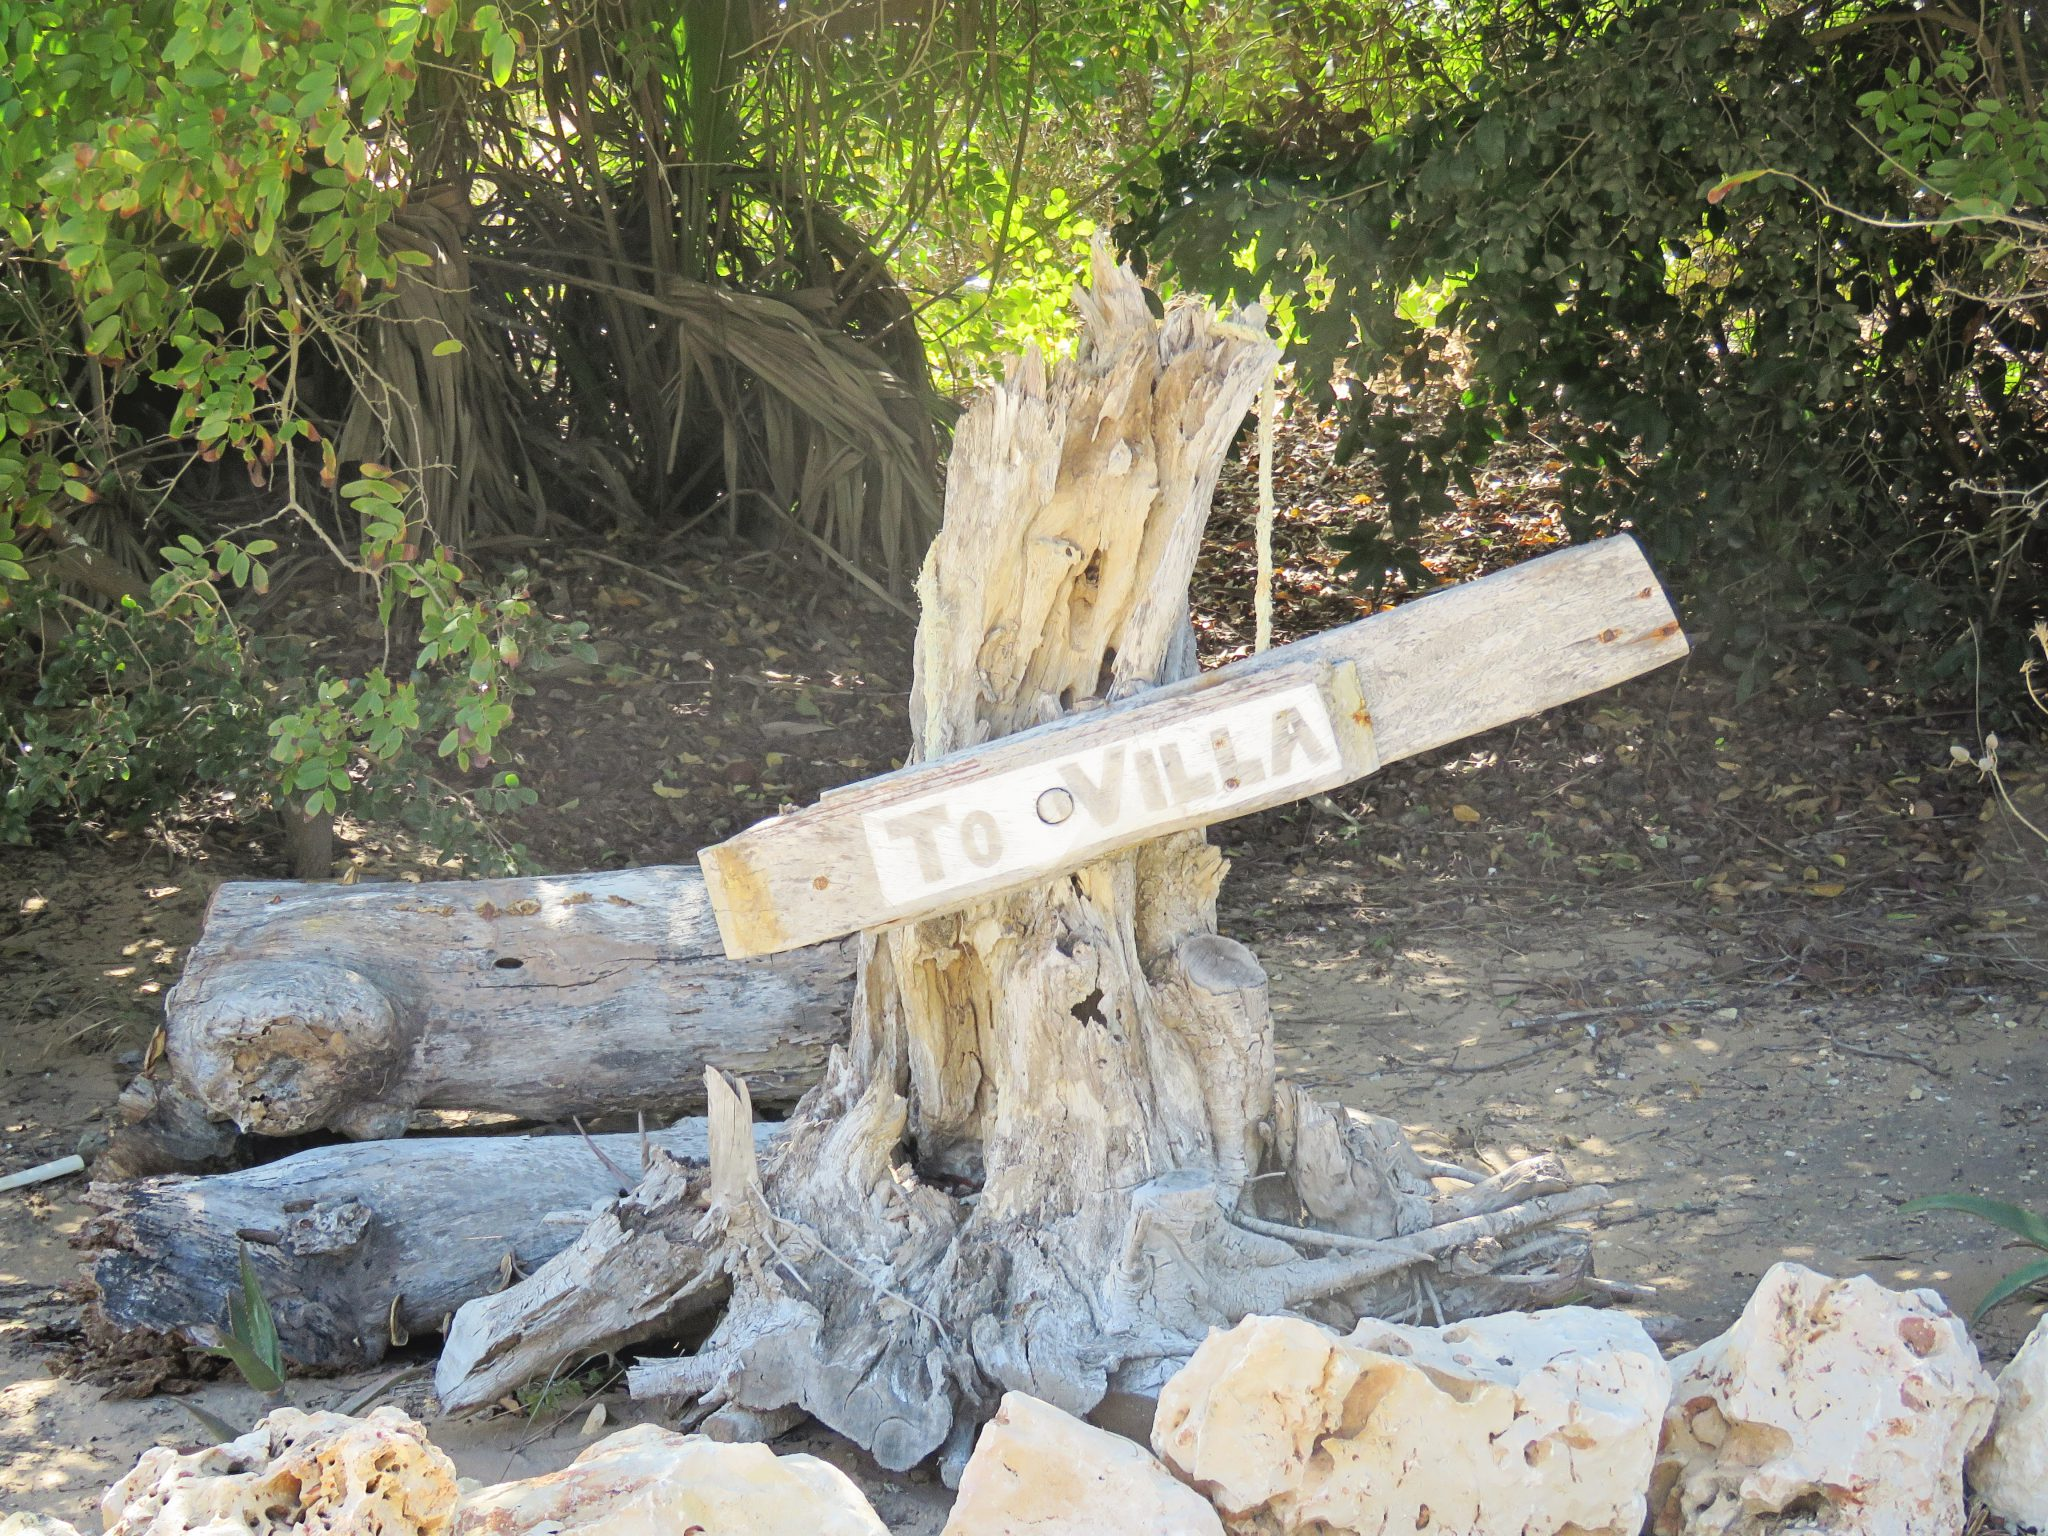 driftwood sign pointing to the villa at santorini mozambique